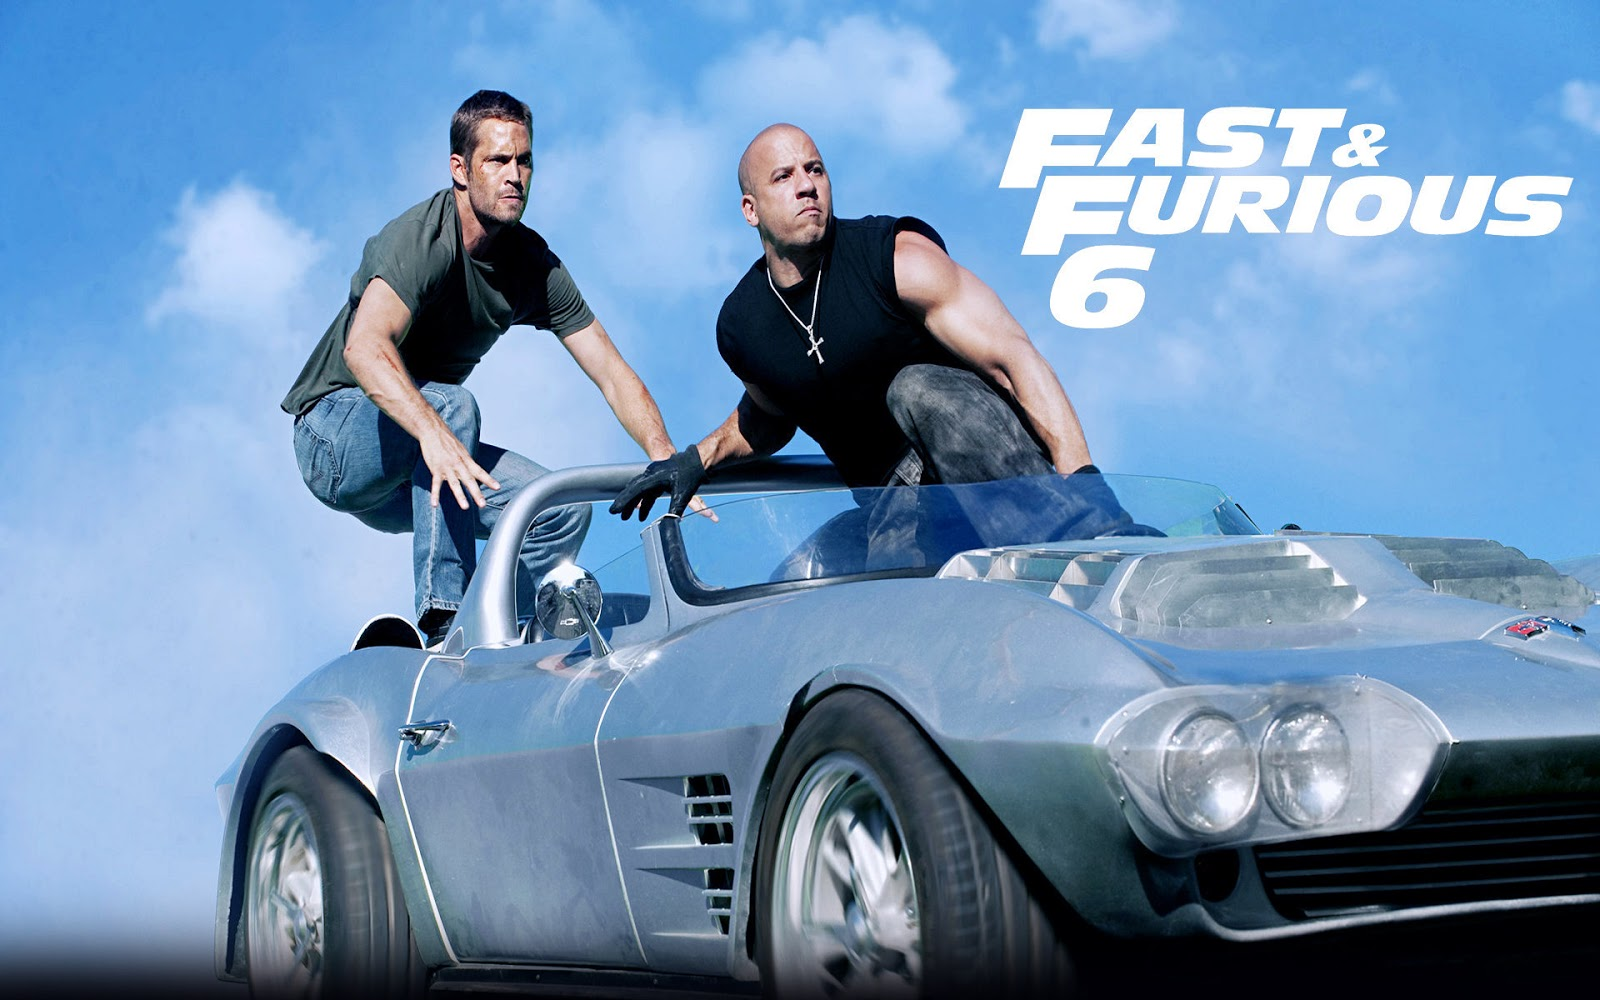 fast and furious 6 hd wallpapers 2013 all about hd wallpapers. Black Bedroom Furniture Sets. Home Design Ideas